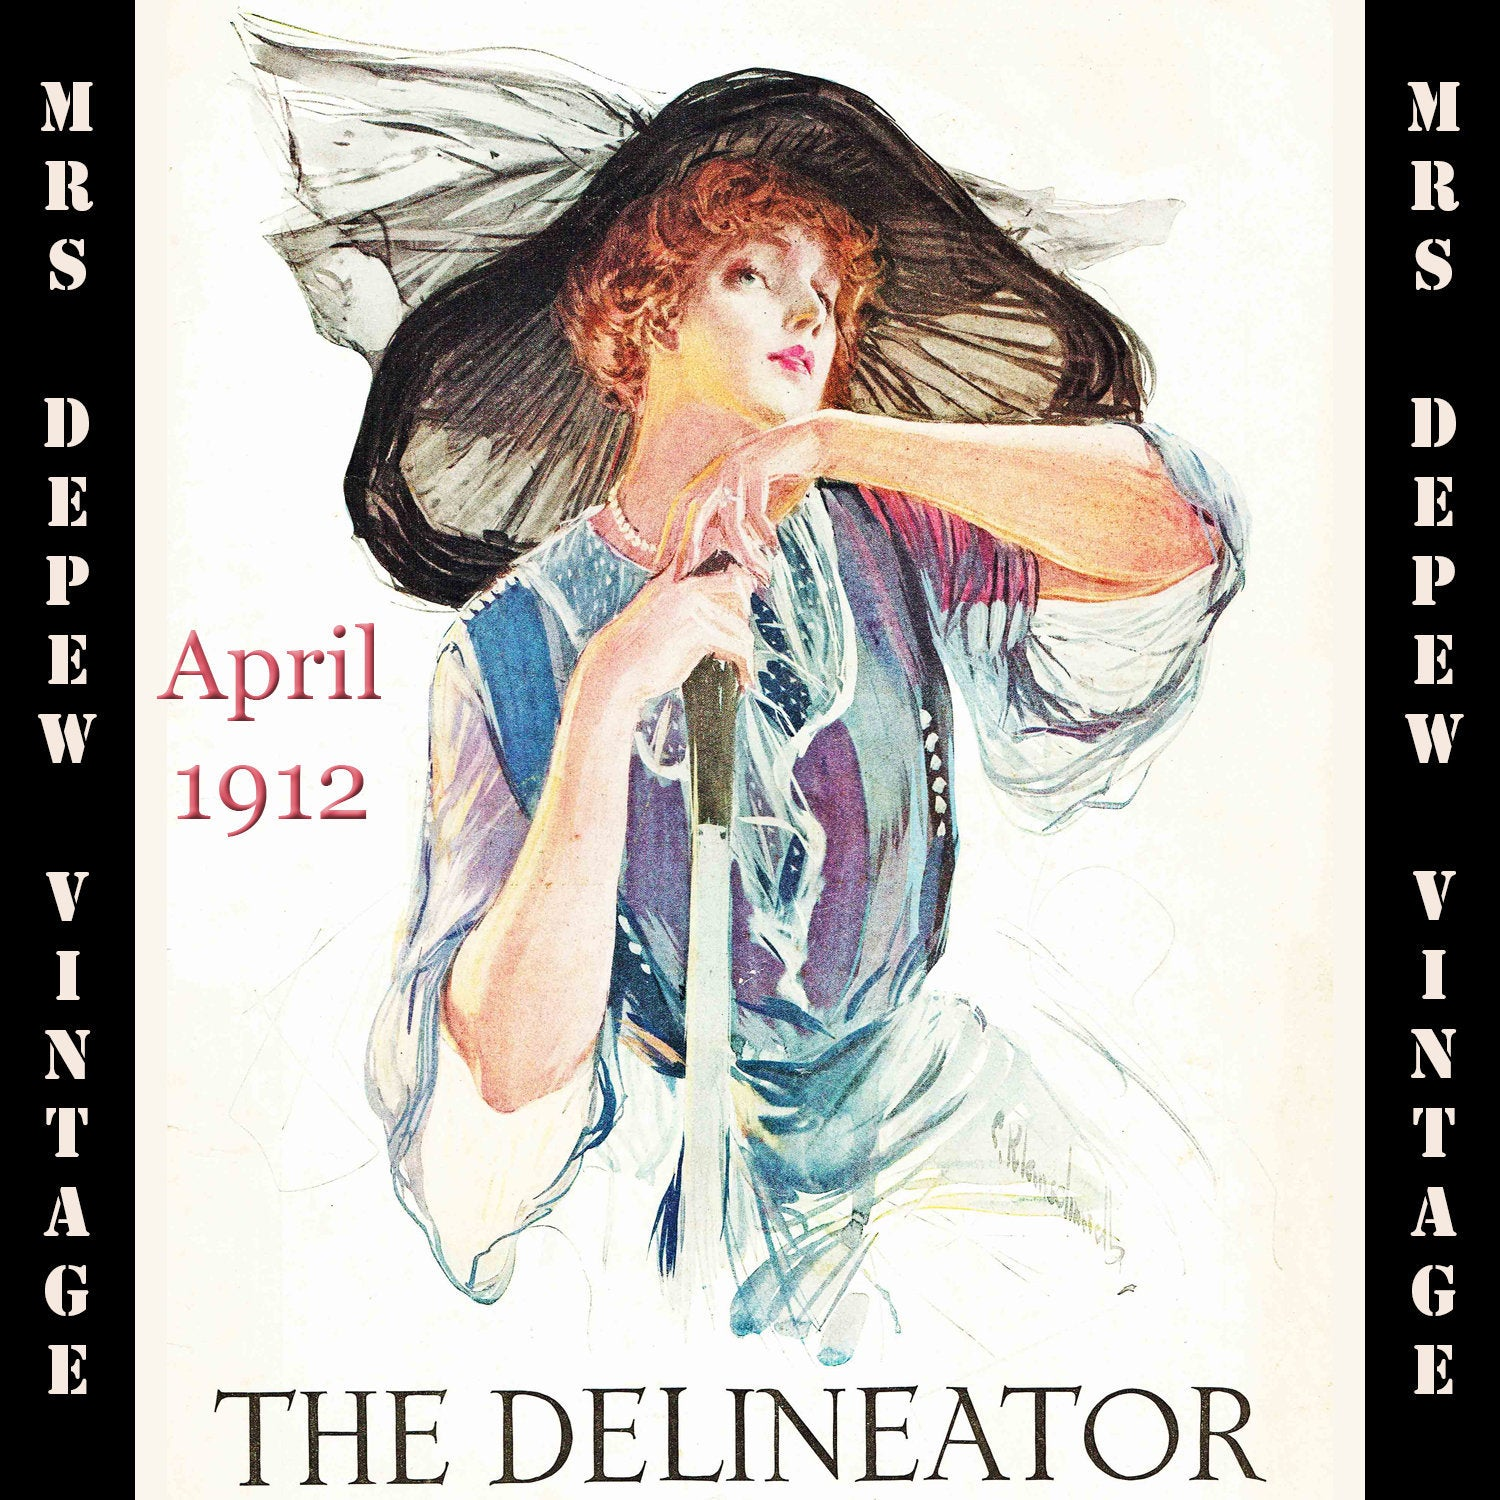 The Delineator April 1912